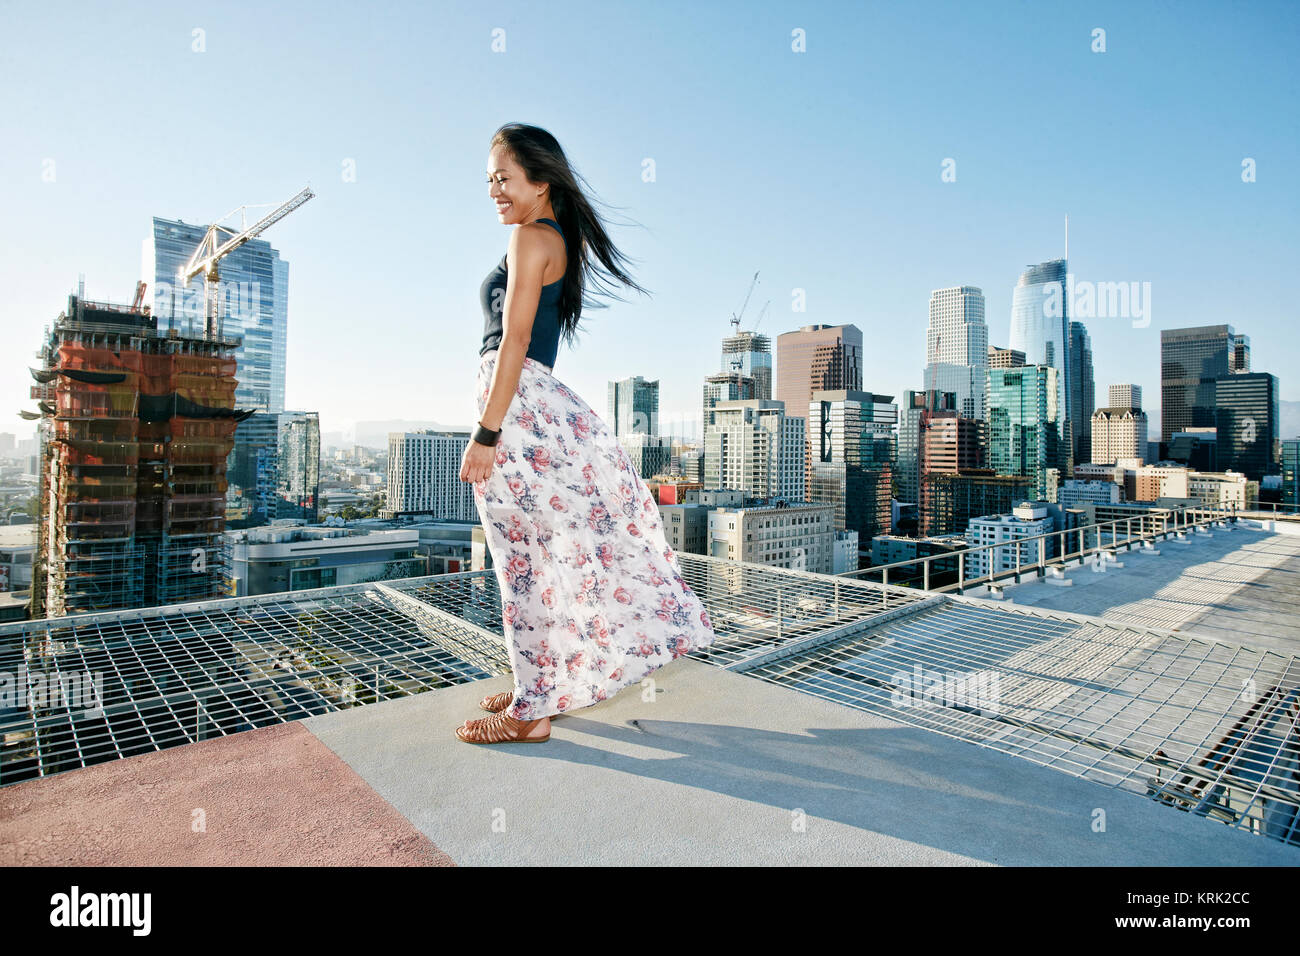 Smiling Asian woman standing on windy urban rooftop - Stock Image